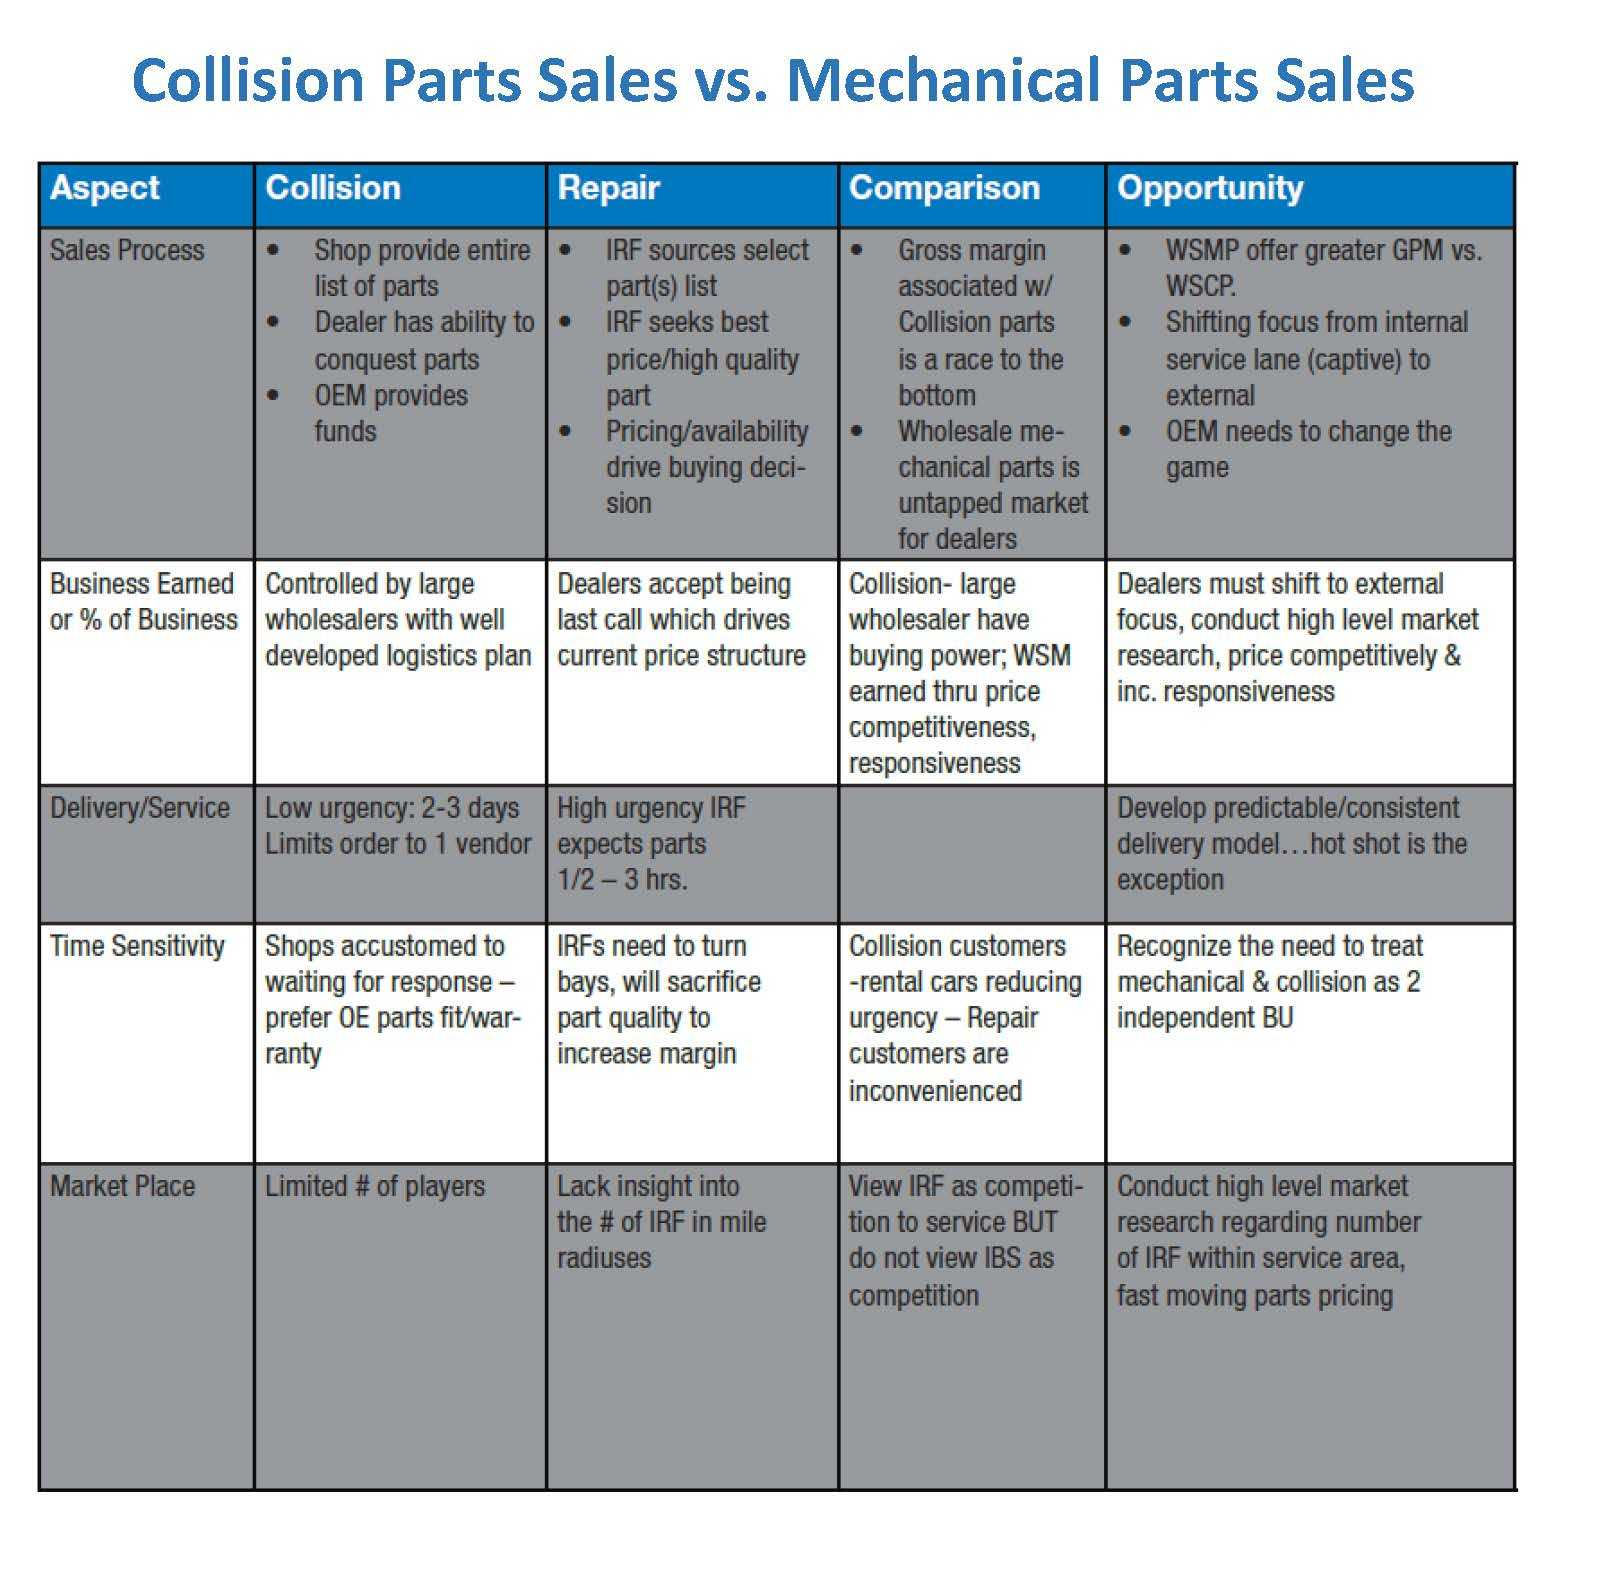 RL-Collision-vs-Repair-2015.jpg#asset:4861